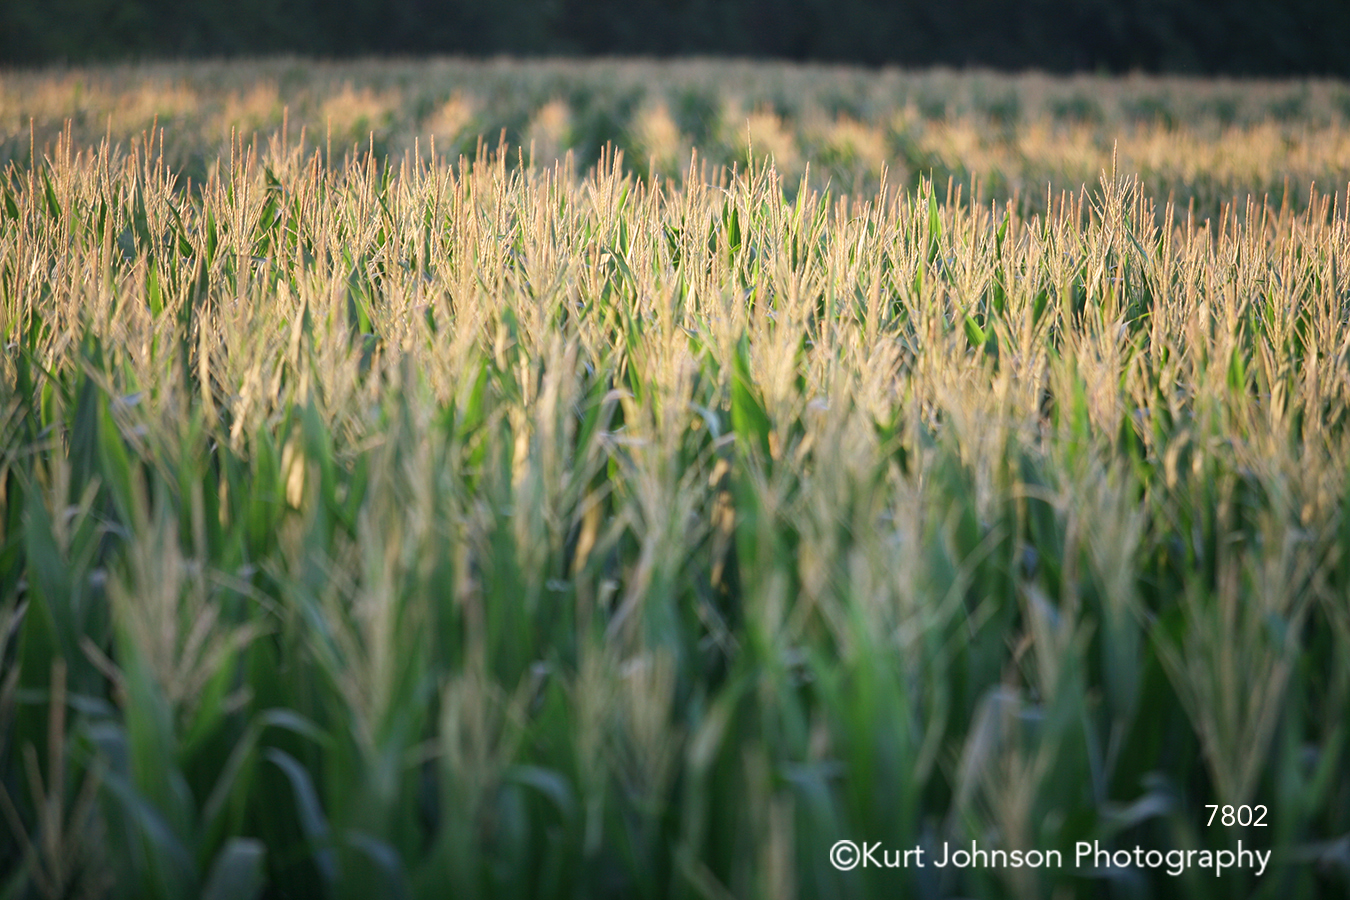 wheat field green grass grasses midwest lines pattern texture